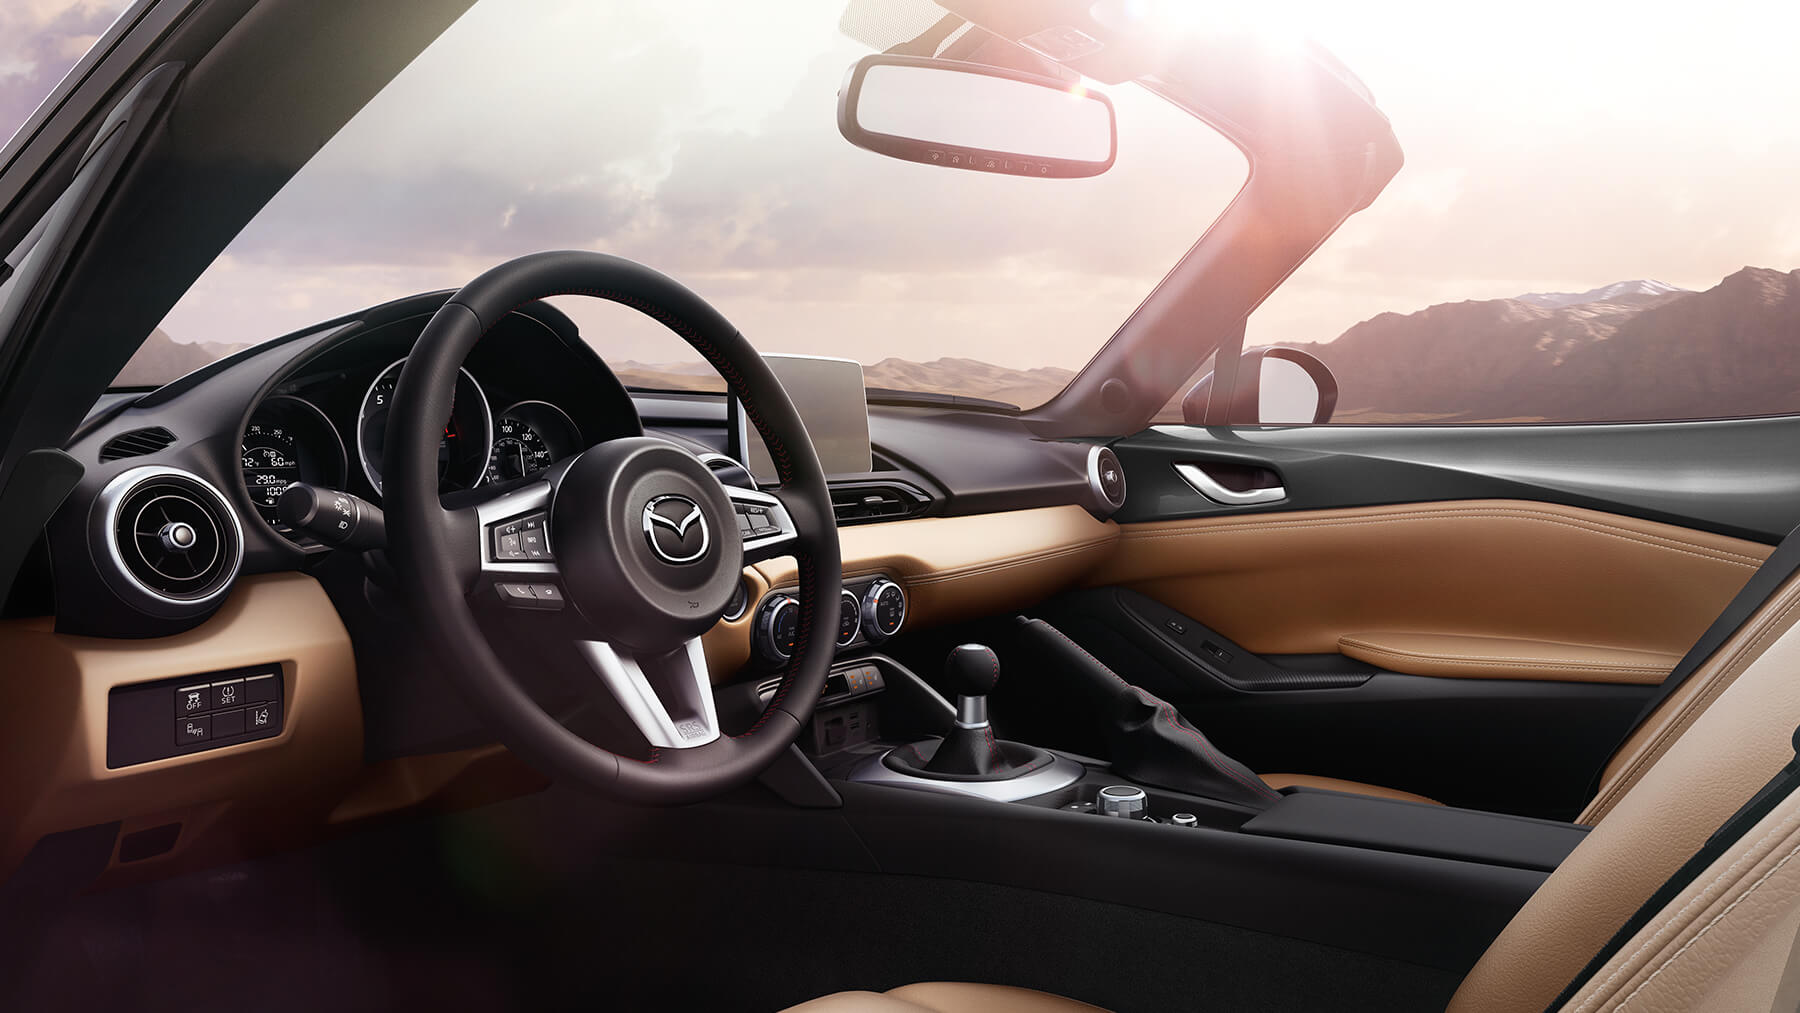 2016 Mazda MX-5 Miata Side Interior